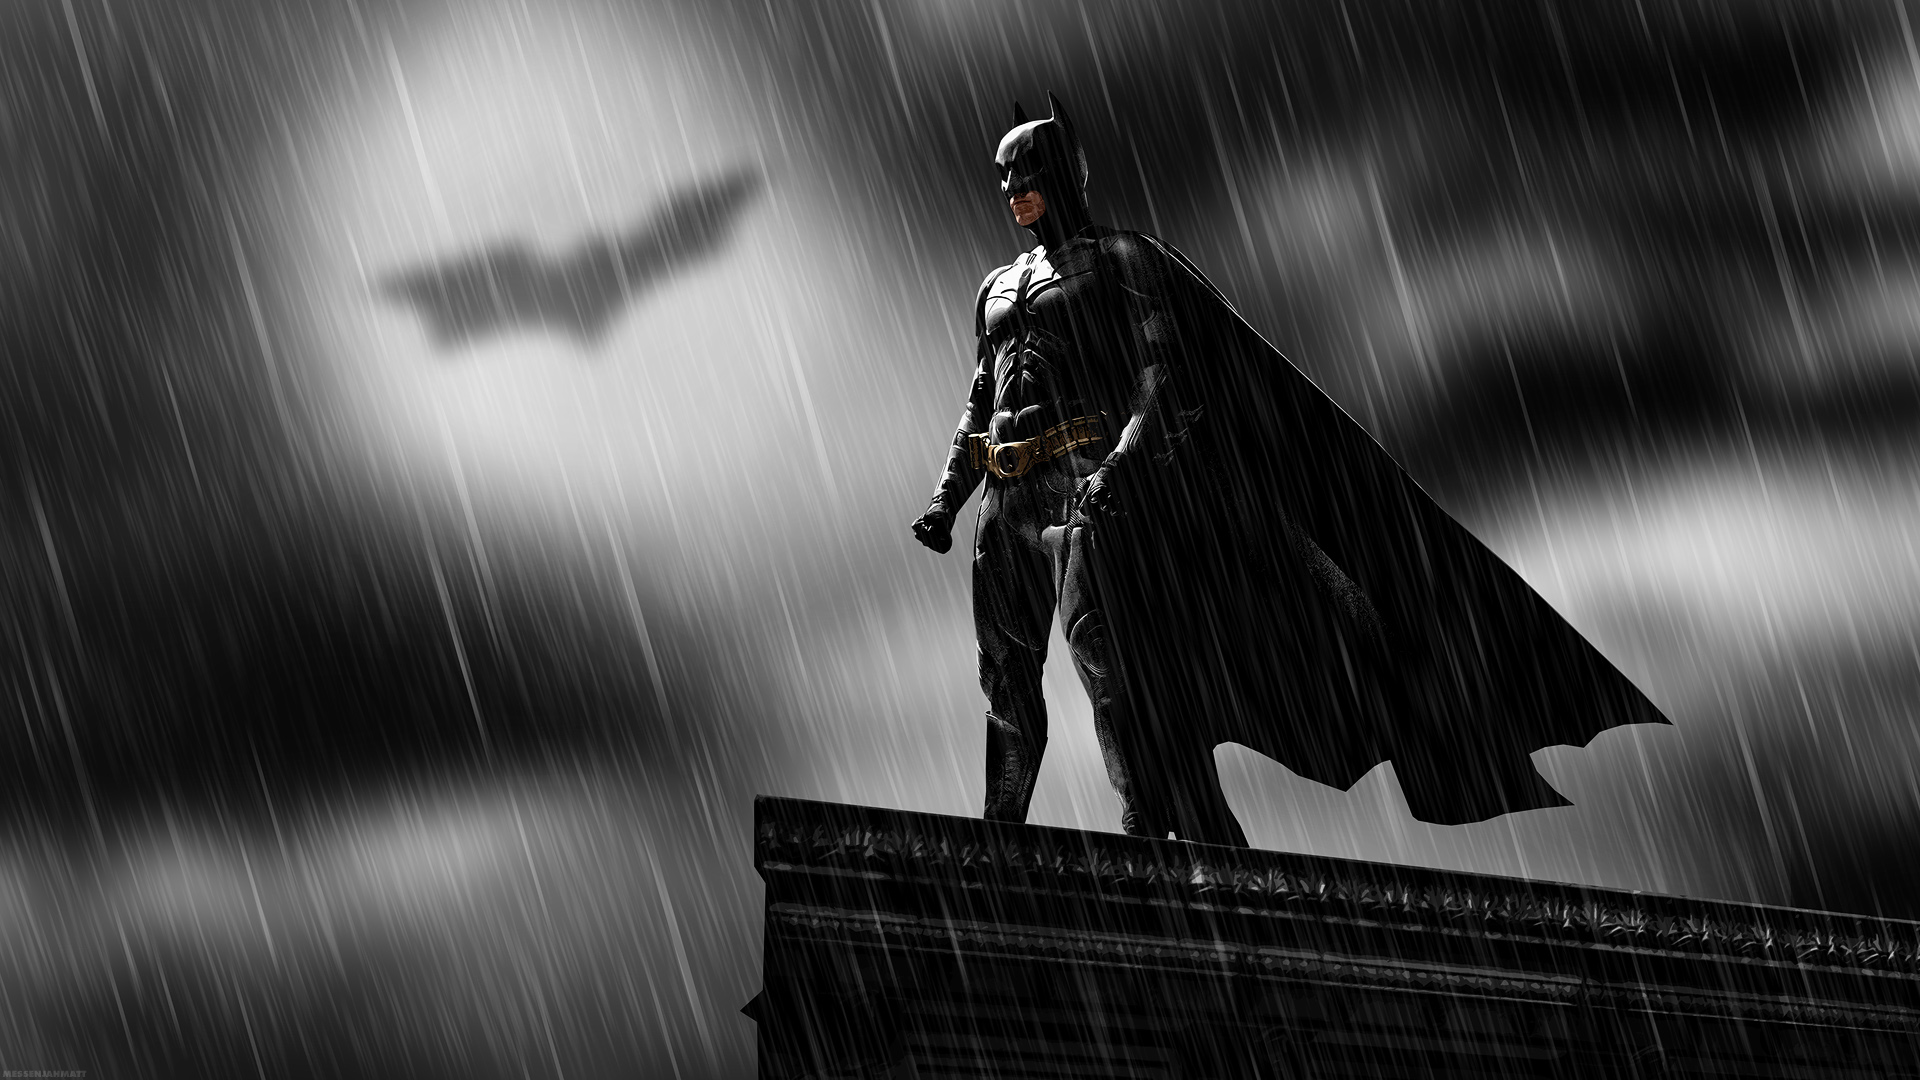 Batman Wallpaper 19201080 120939 HD Wallpaper Res 1920x1080 1920x1080